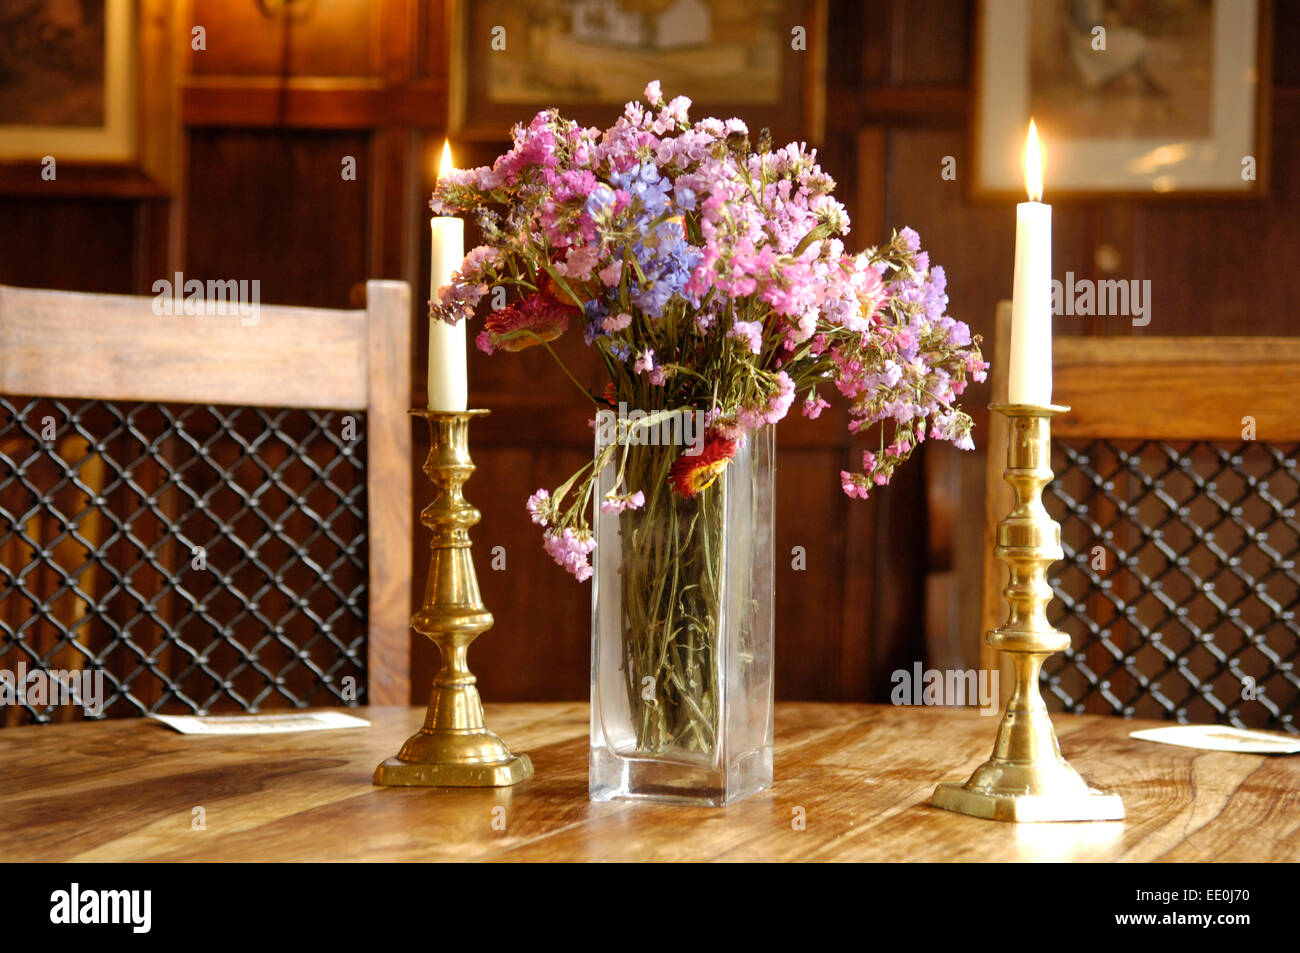 Hotel Dining Table With Flowers And Candles Stock Photo Alamy